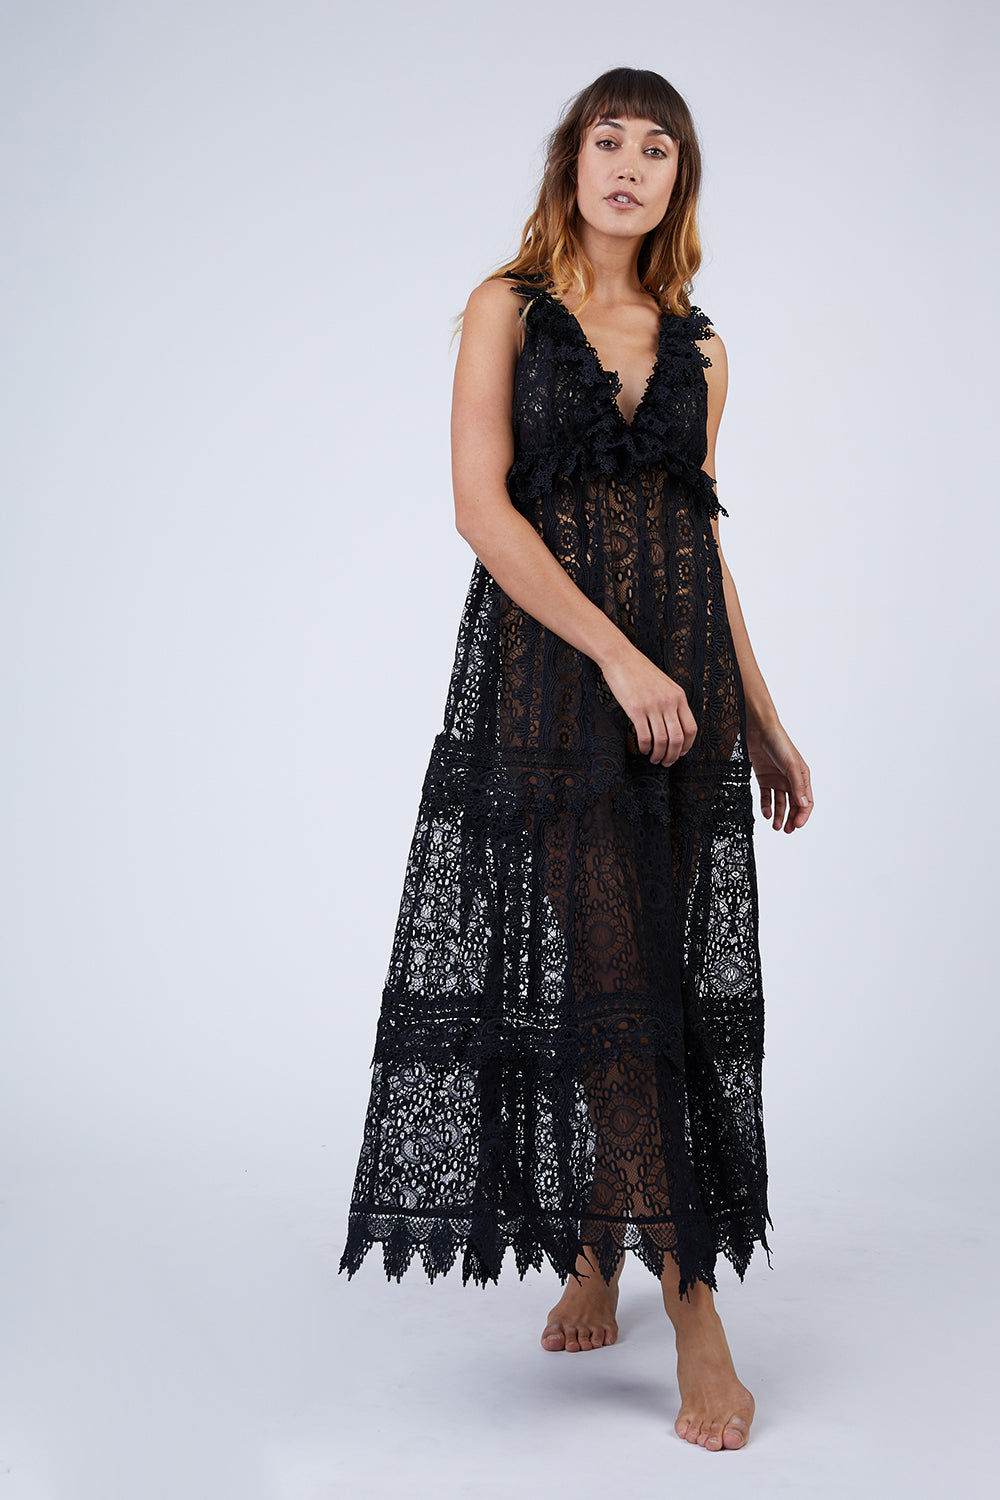 WAIMARI Chic Escape Sheer Lace Maxi Dress - Black Dress | Black| Waimari Chic Escape Sheer Lace Maxi Dress - Black Maxi dress V neckline  criss cross back straps All over lace detail  Ruffle detail Front View